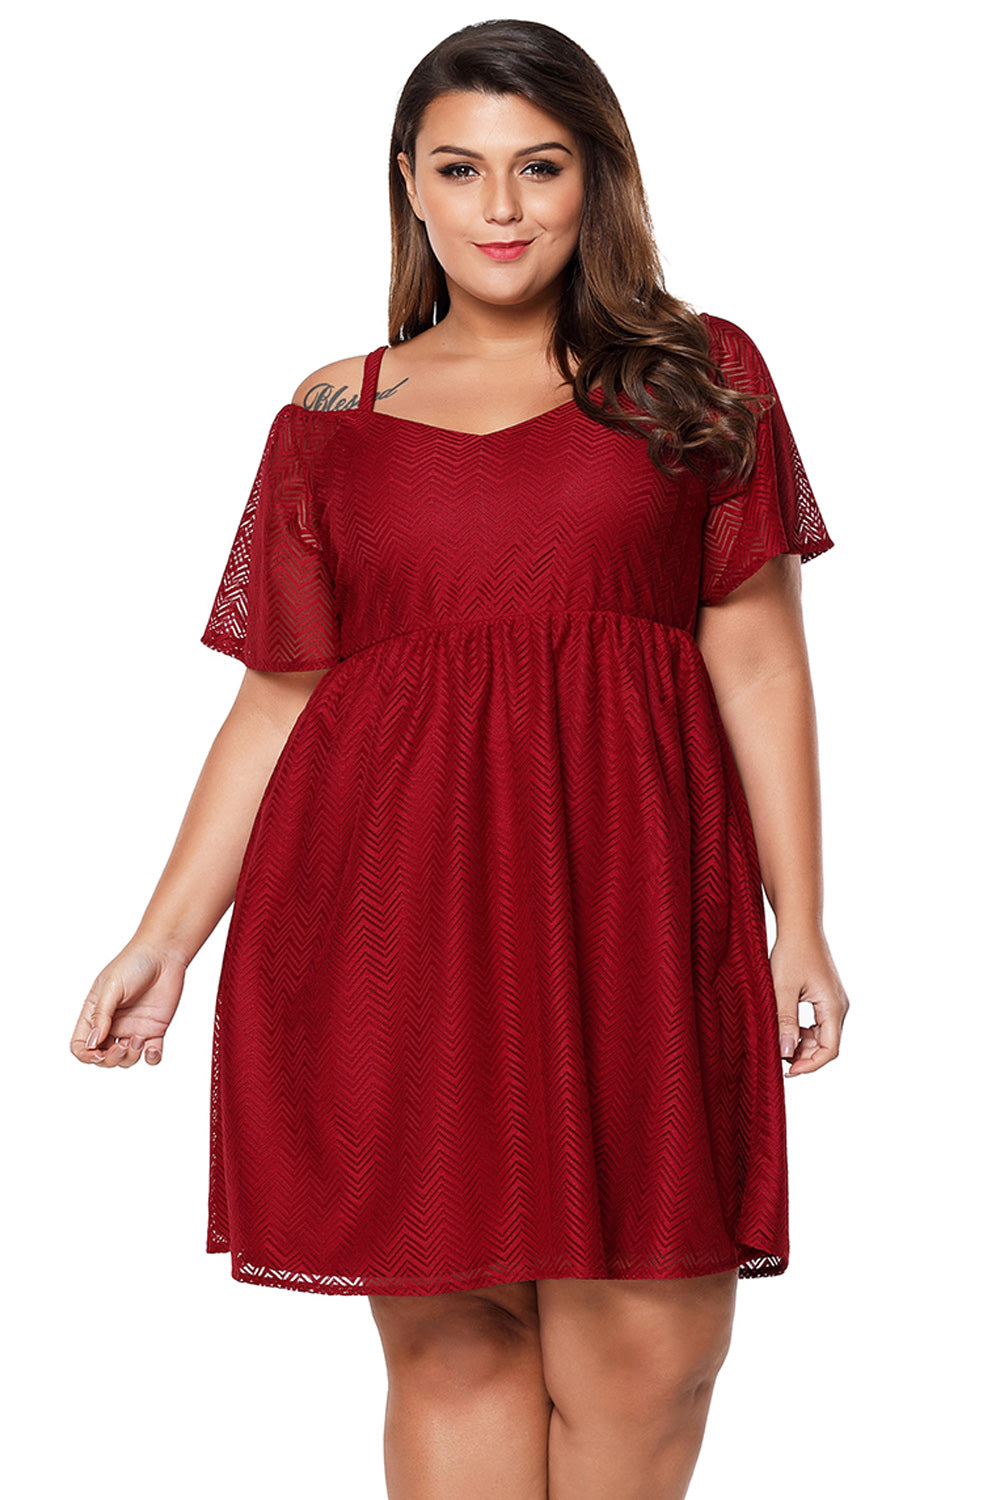 Burgundy Textured Chiffon Cold Shoulder Plus Size Skater Dress LAVELIQ - Laveliqus